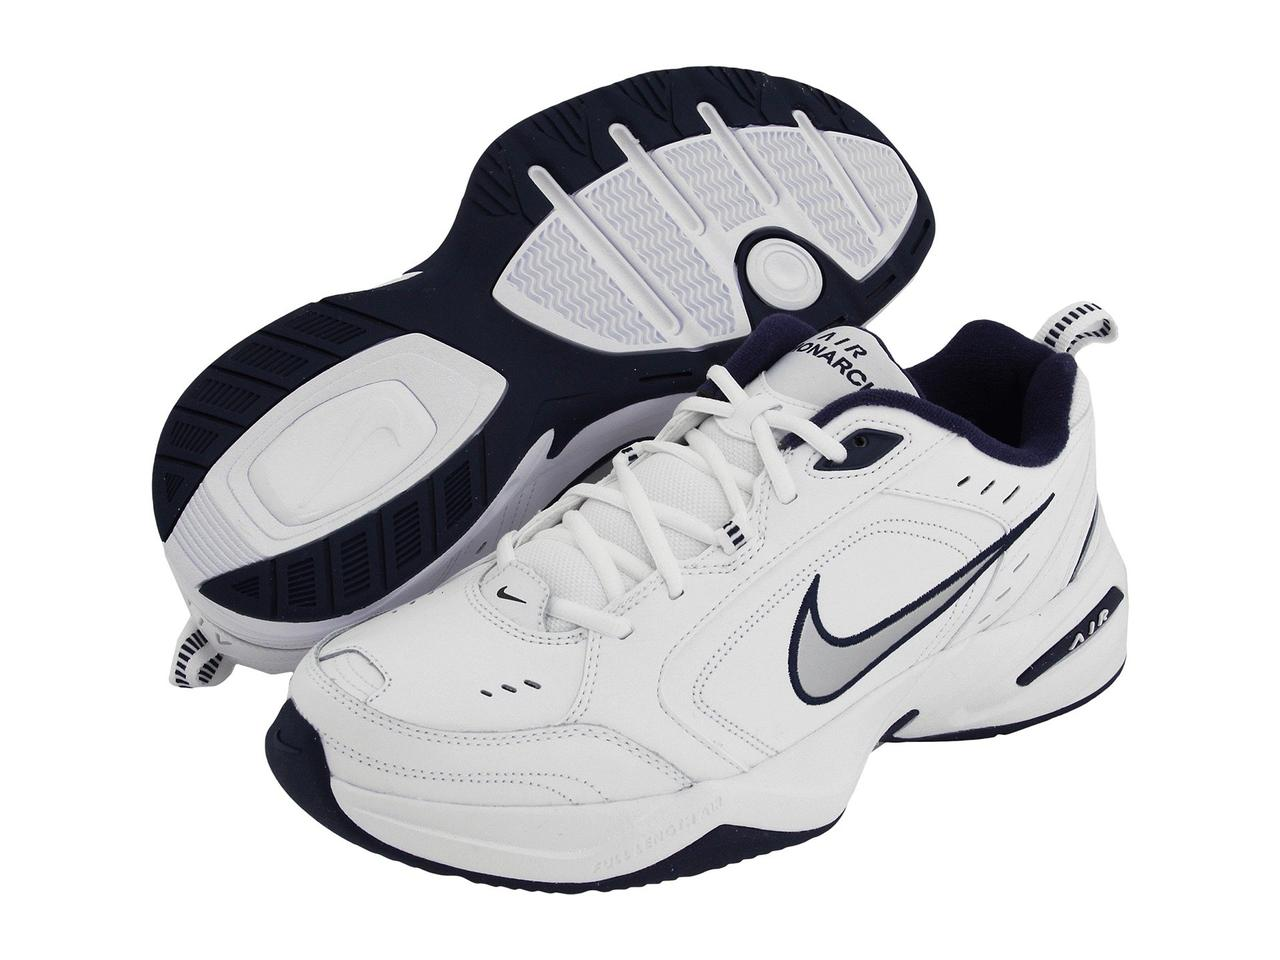 f5d848b004bf Кроссовки Кеды (Оригинал) Nike Air Monarch IV White Metallic Silver-Midnight